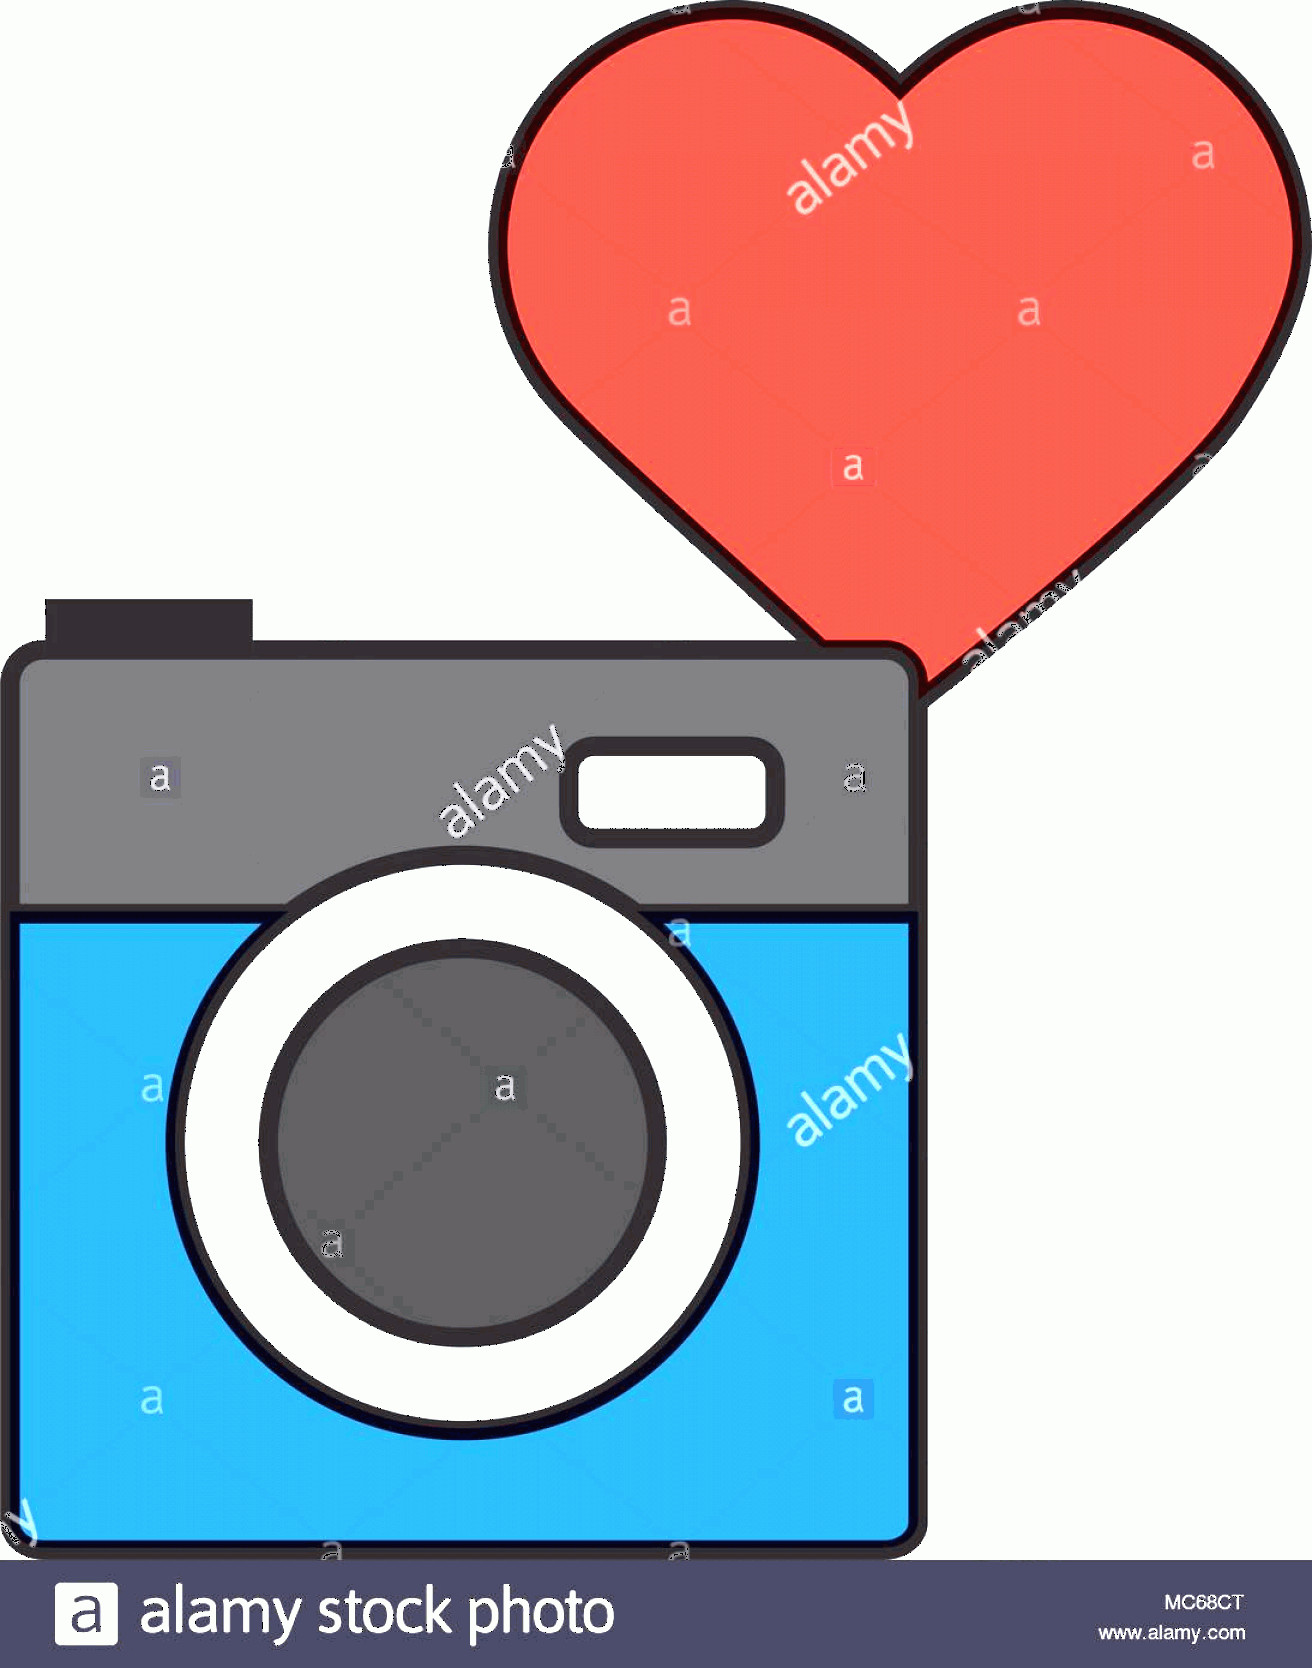 Camera Heart Clip Art Vector: Photo Camera Love Heart Social Media Image